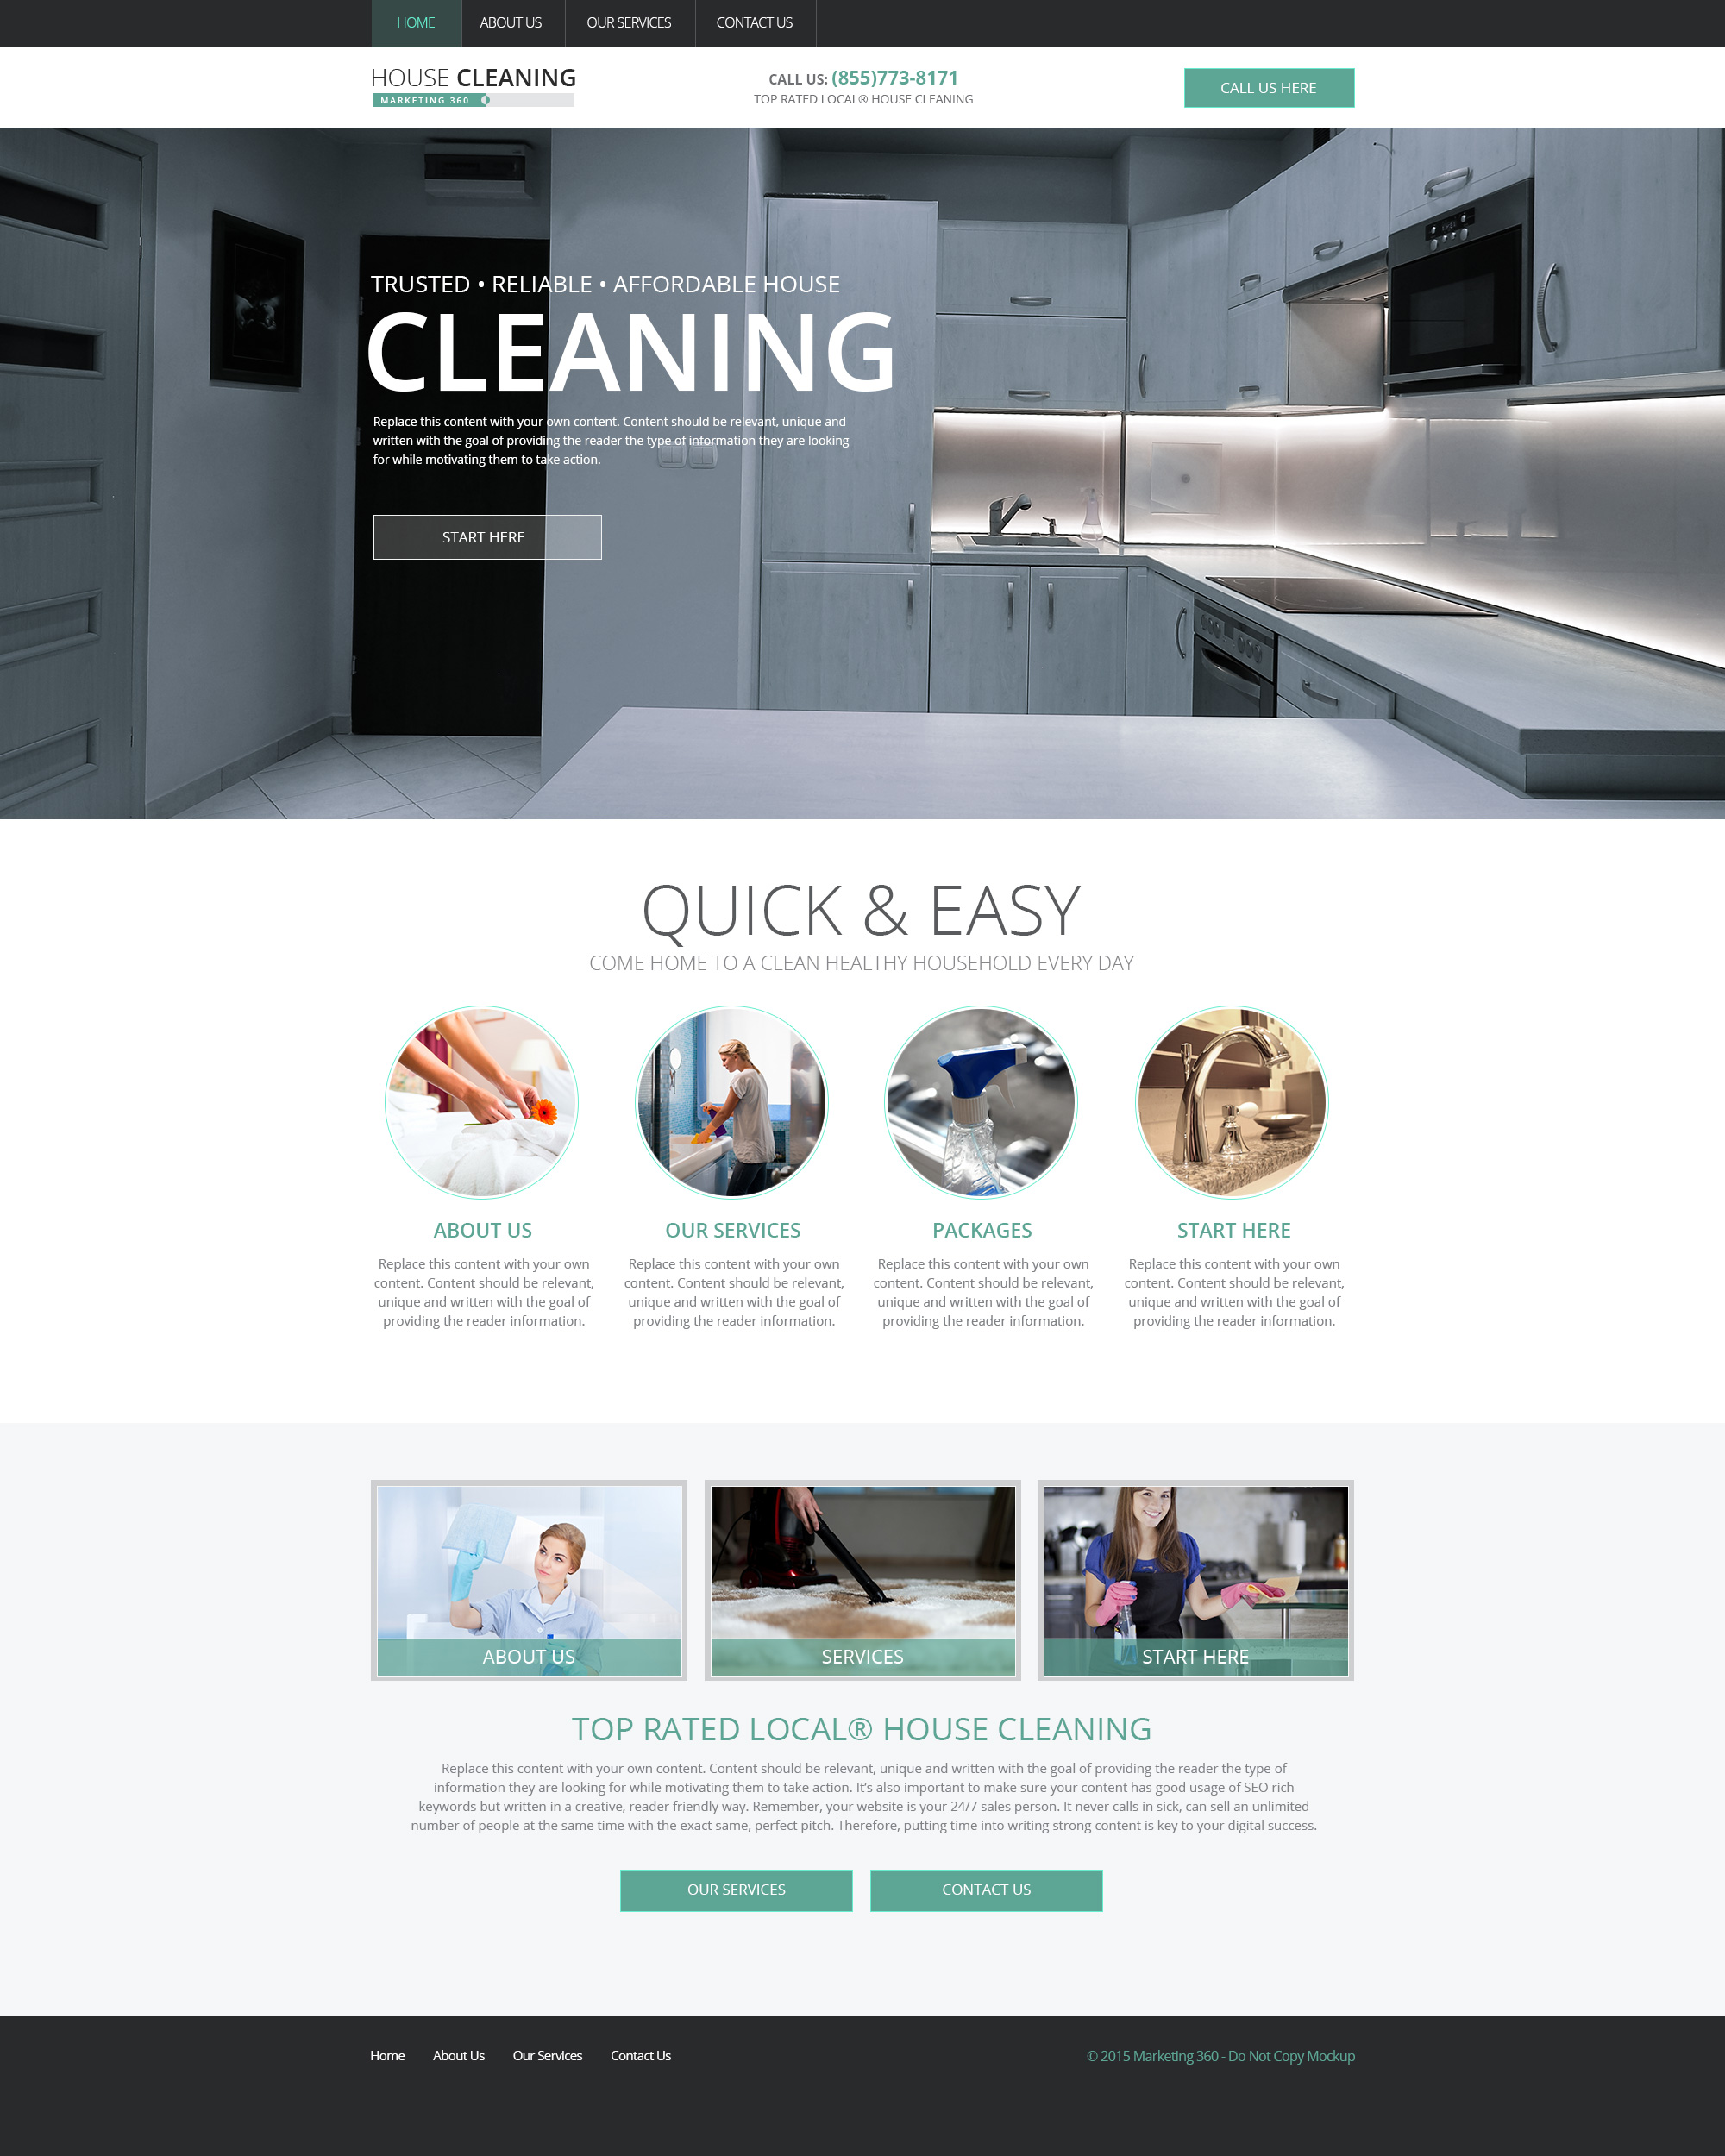 house cleaning leads